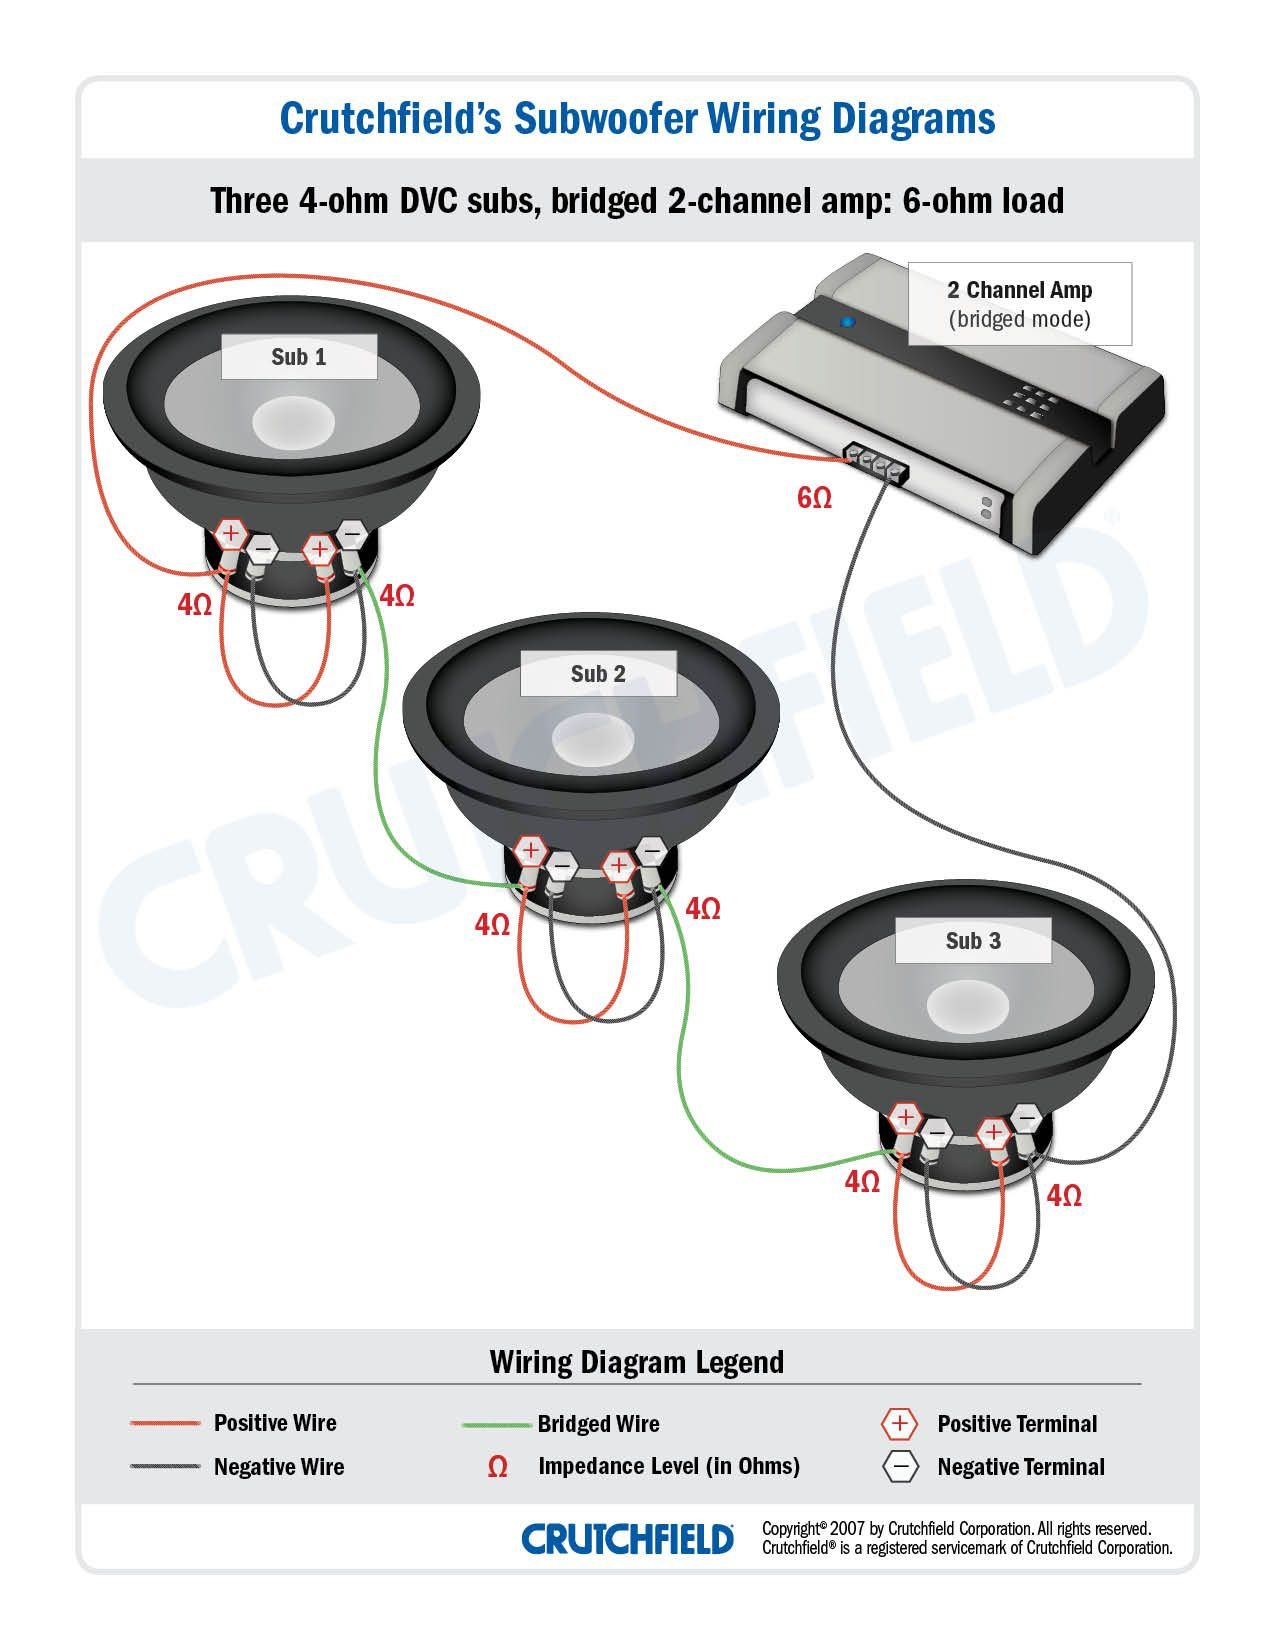 top 10 subwoofer wiring diagram free download 3 dvc 4 ohm 2 ch top rh pinterest com wiring kit for subs walmart wiring kit for subs walmart